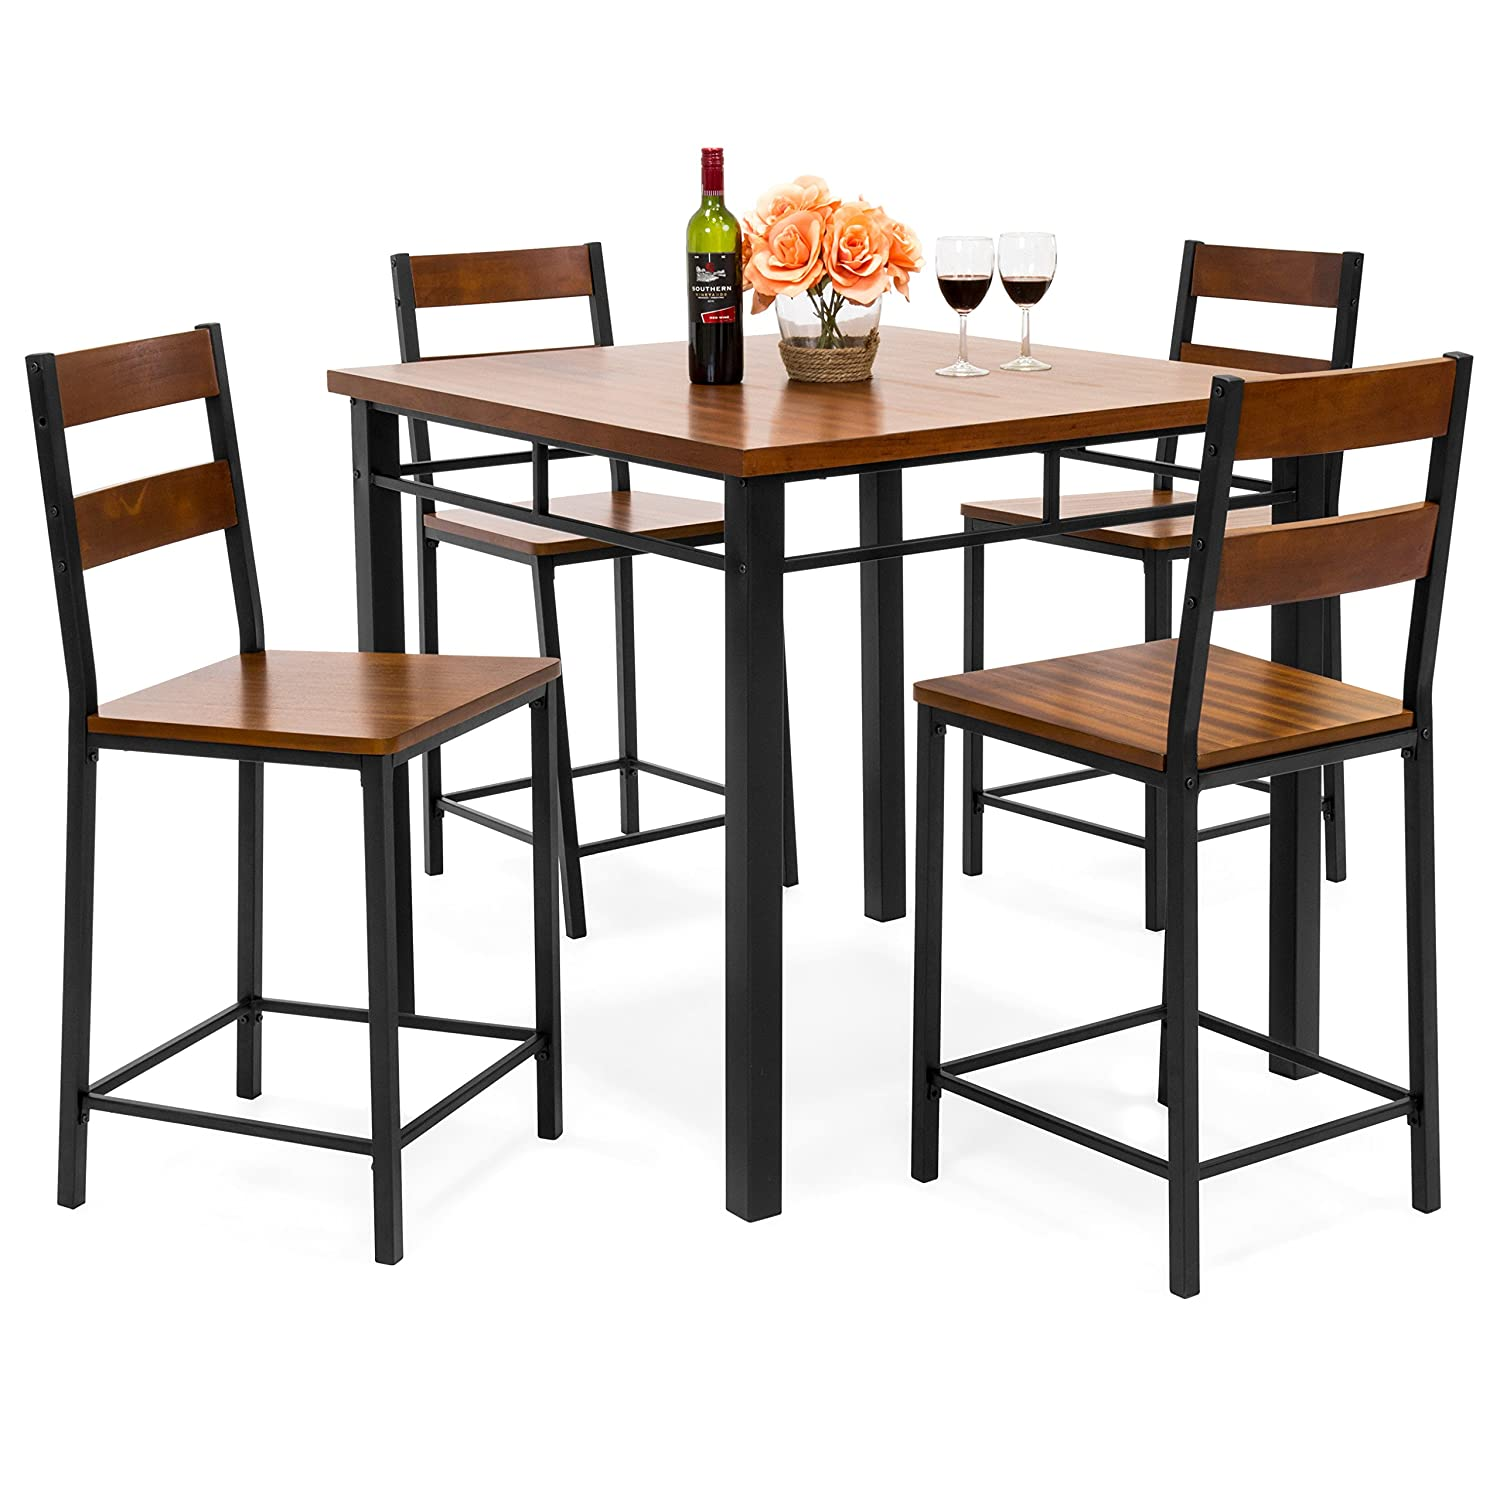 Best Choice Products 5-Piece Contemporary Wood Finish Counter Height Square Table Dining Set Furniture for Kitchen, Breakfast Nook w/ 4 Matching Bar Stools, Steel Frame - Brown